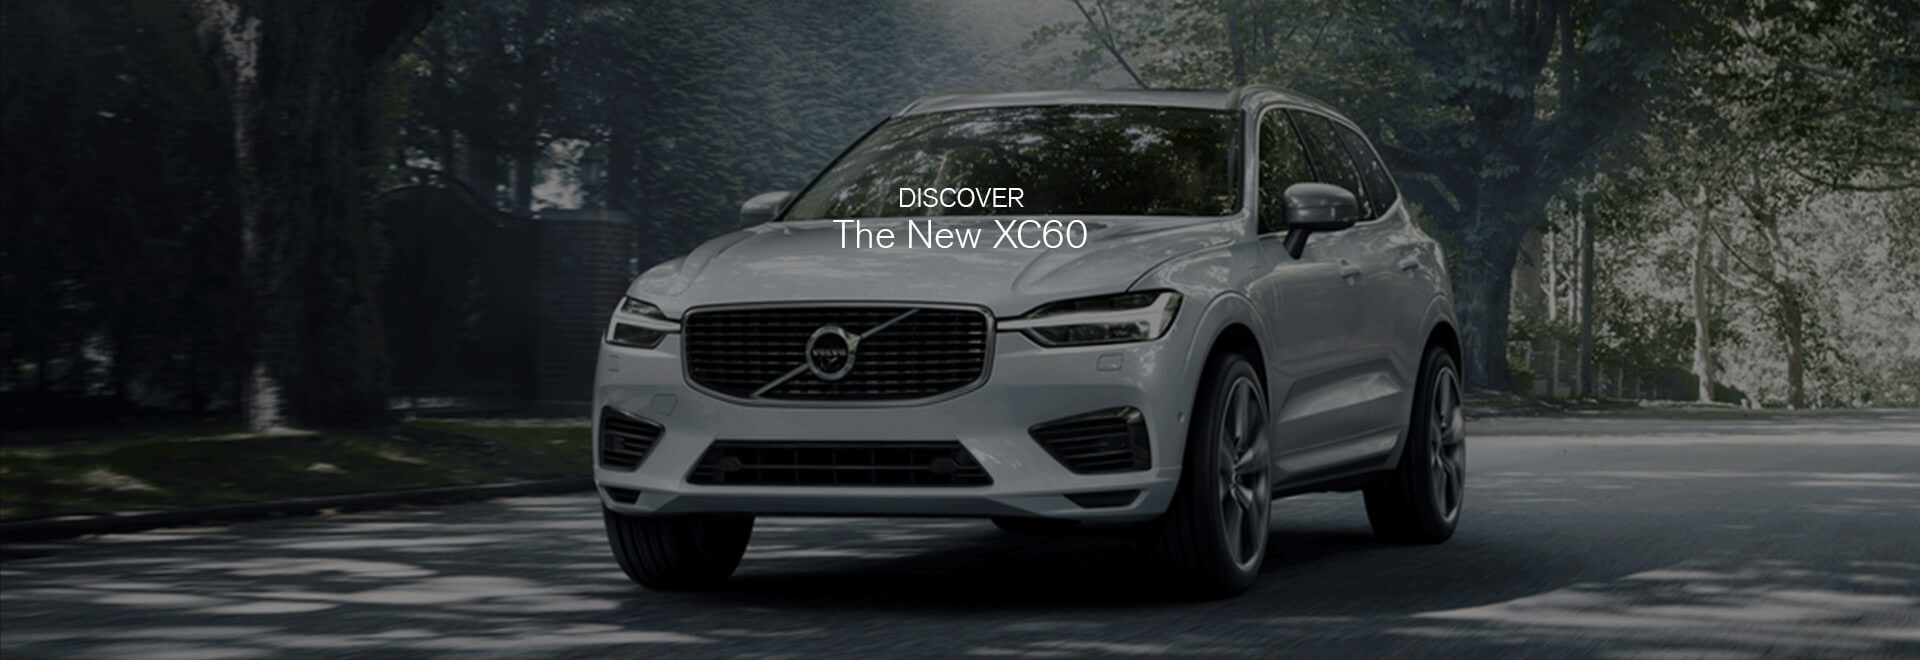 New Volvo Xc60 For Sale Melbourne City Volvo